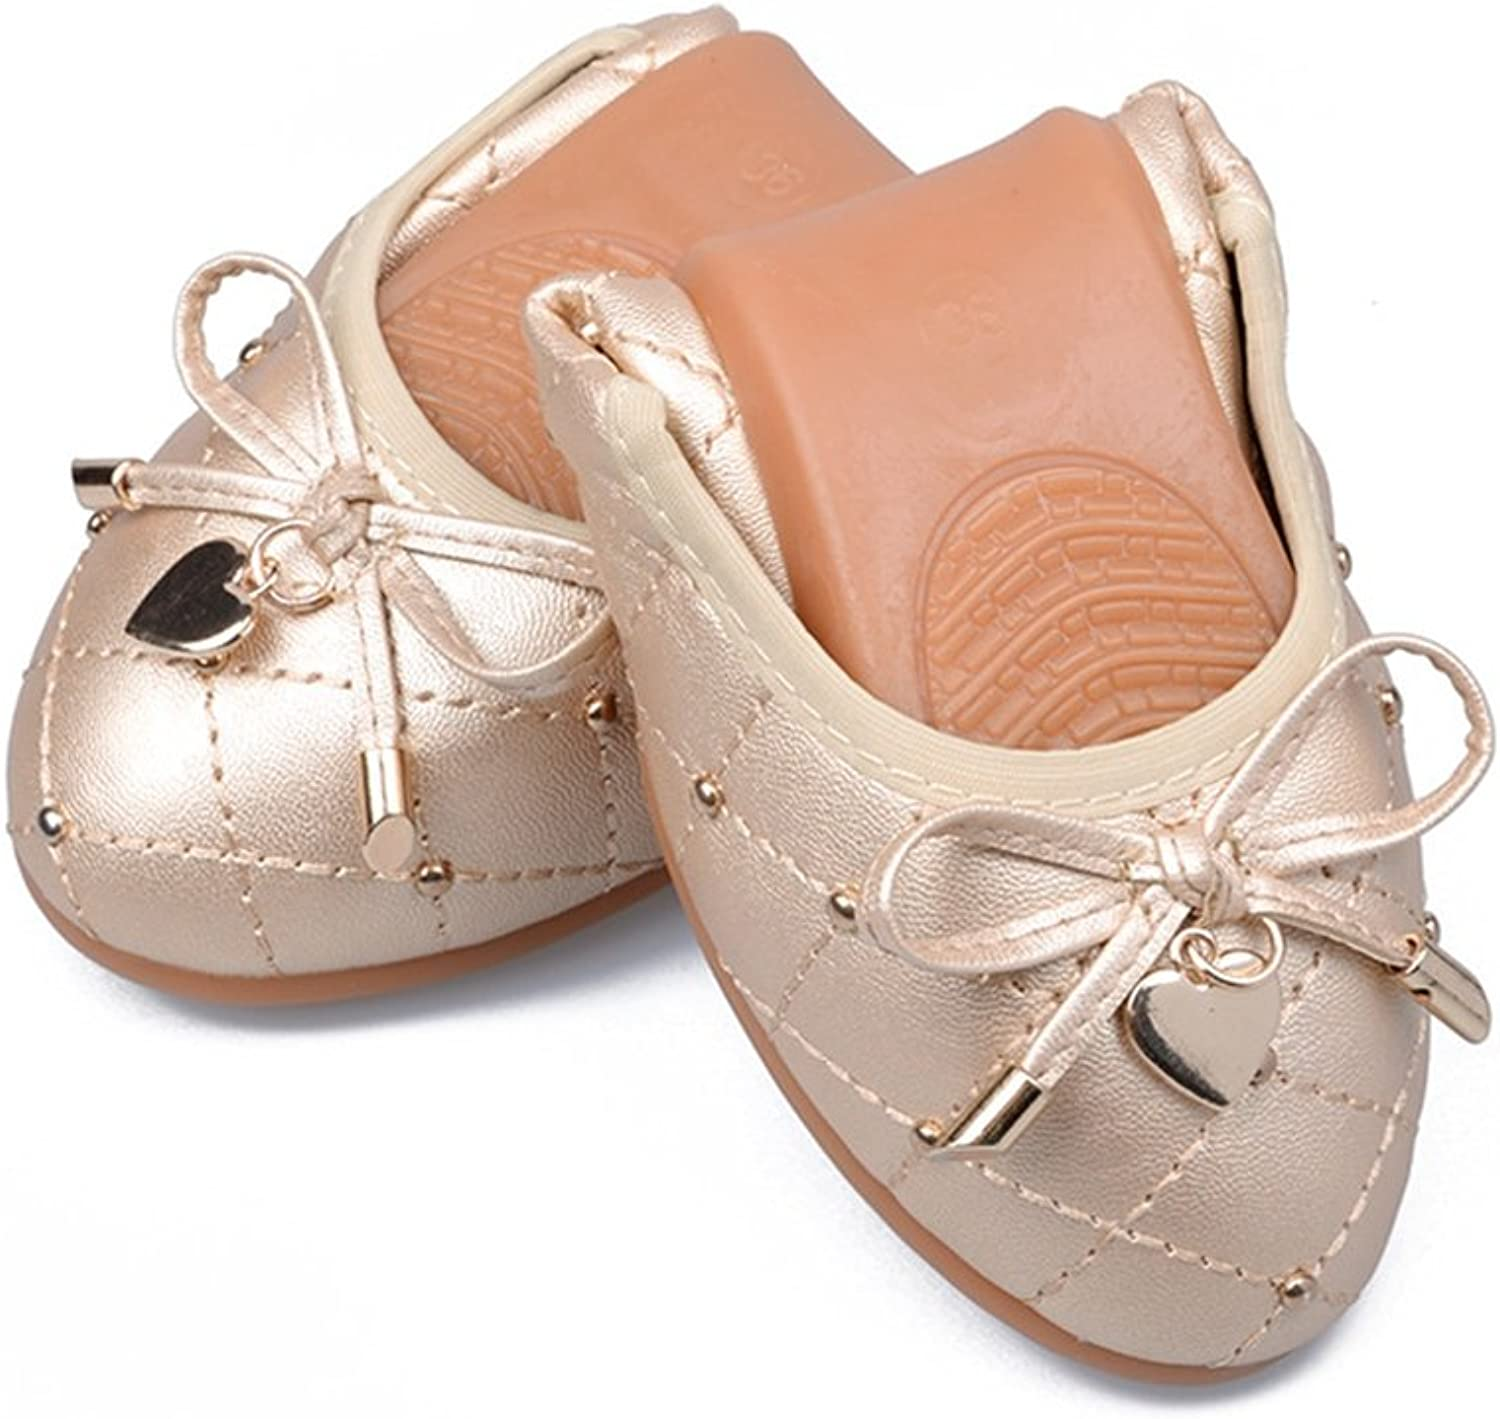 T-JULY Women's Ballet Foldable Slip On Cassual Flats Bow-Knot shoes